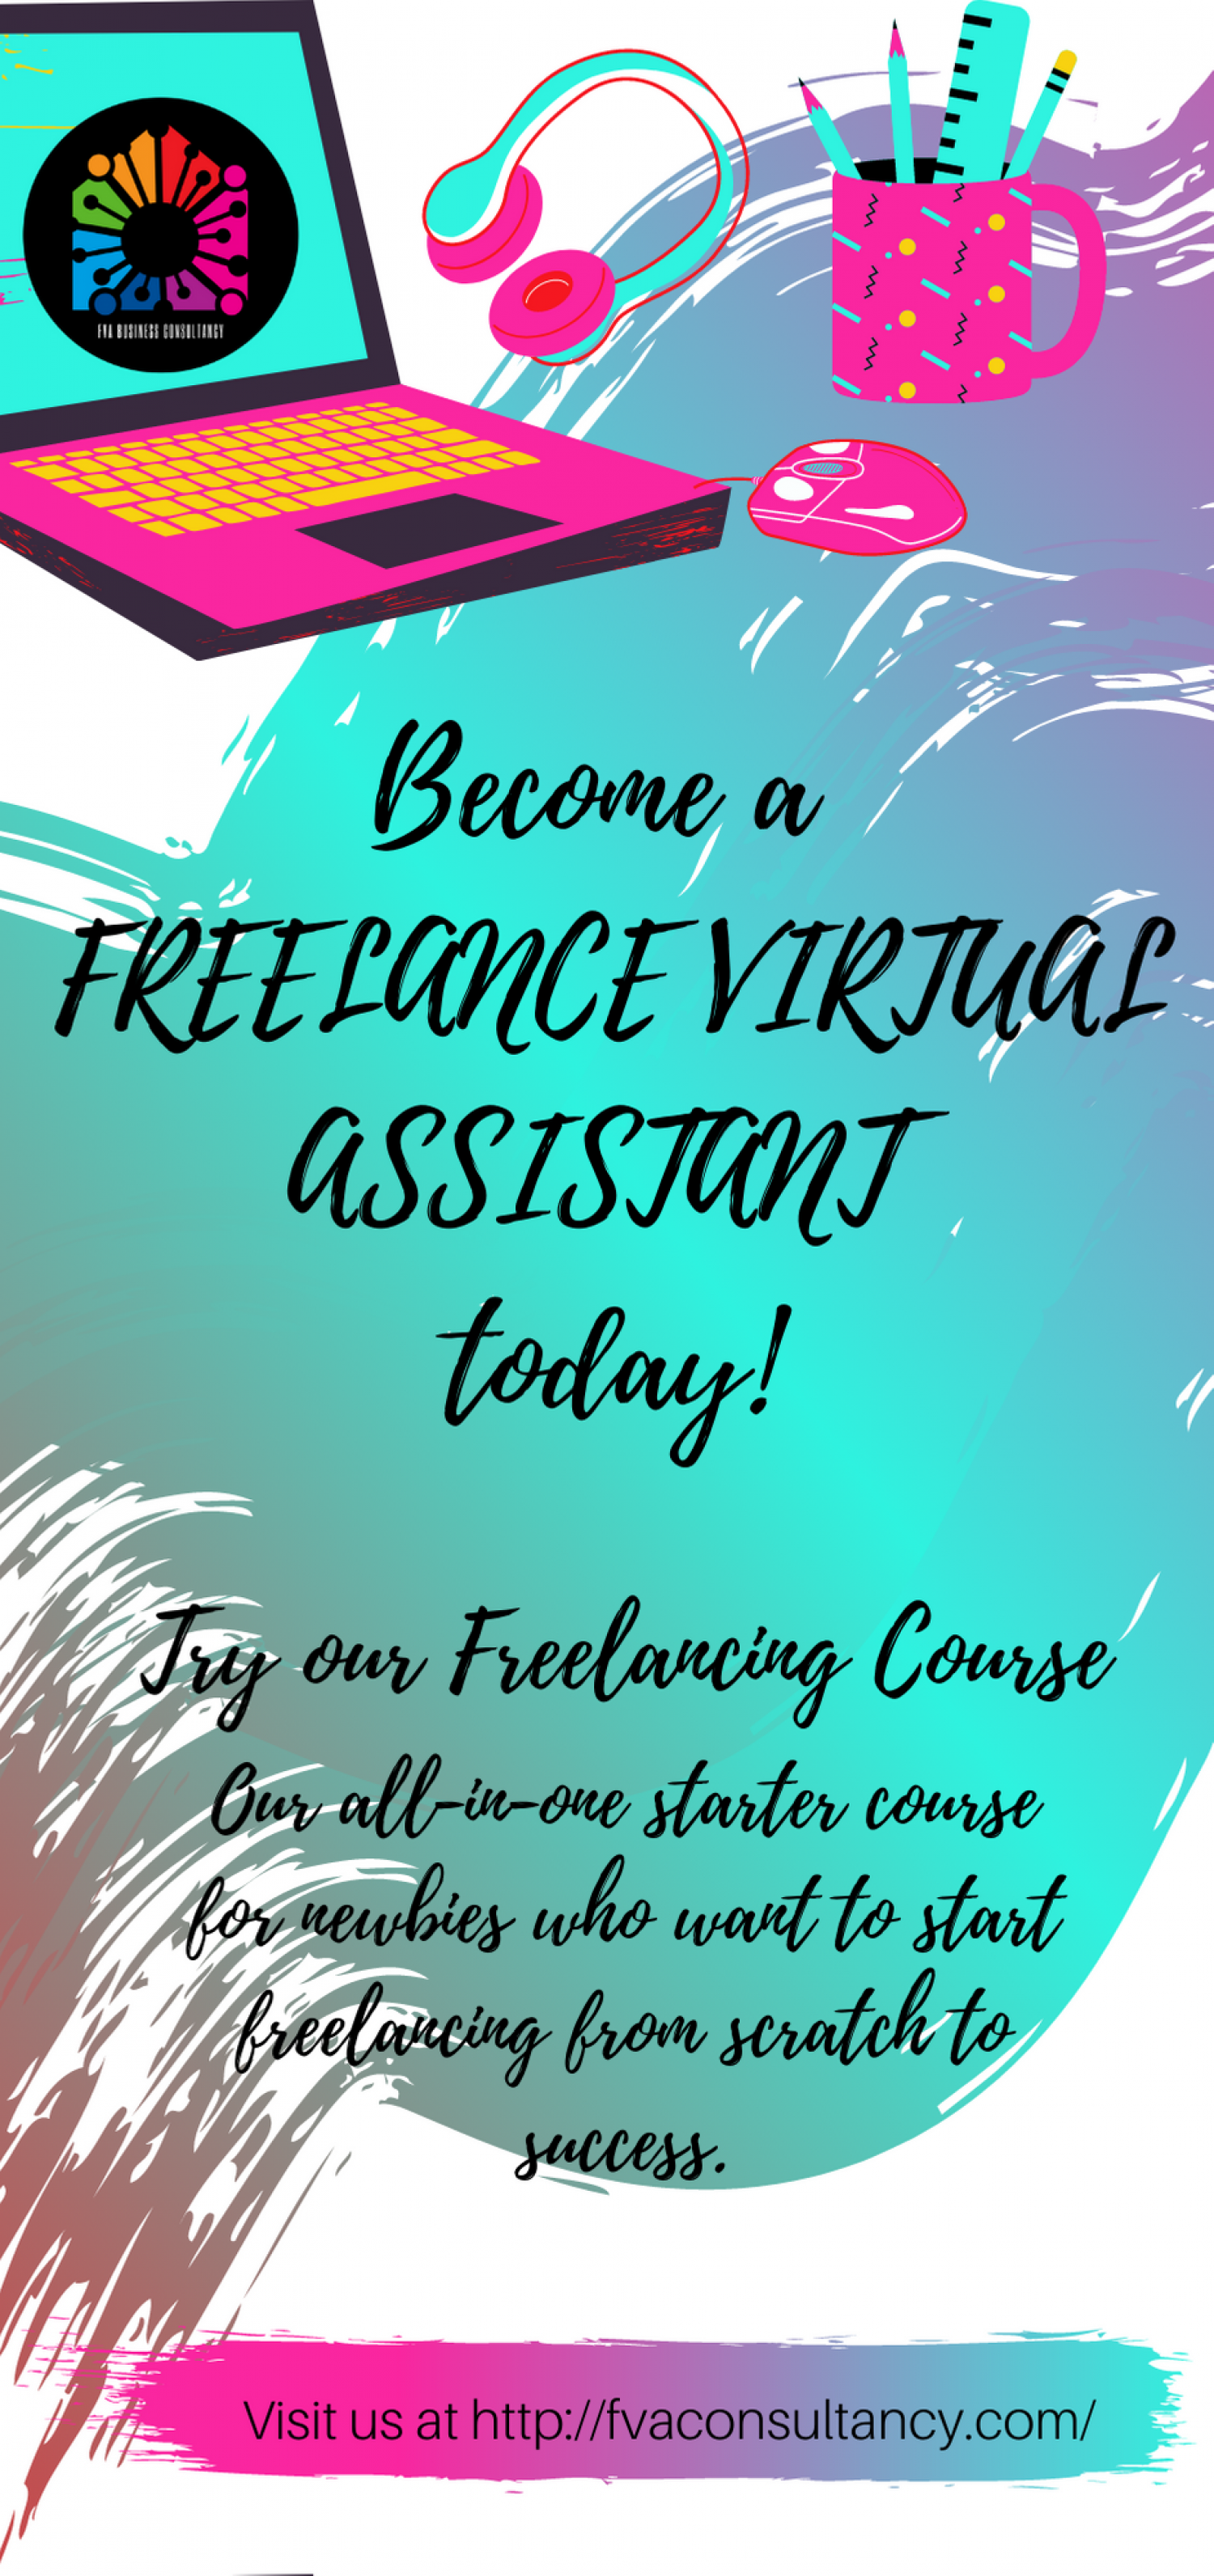 Become a Freelance Virtual Assistant today! Infographic